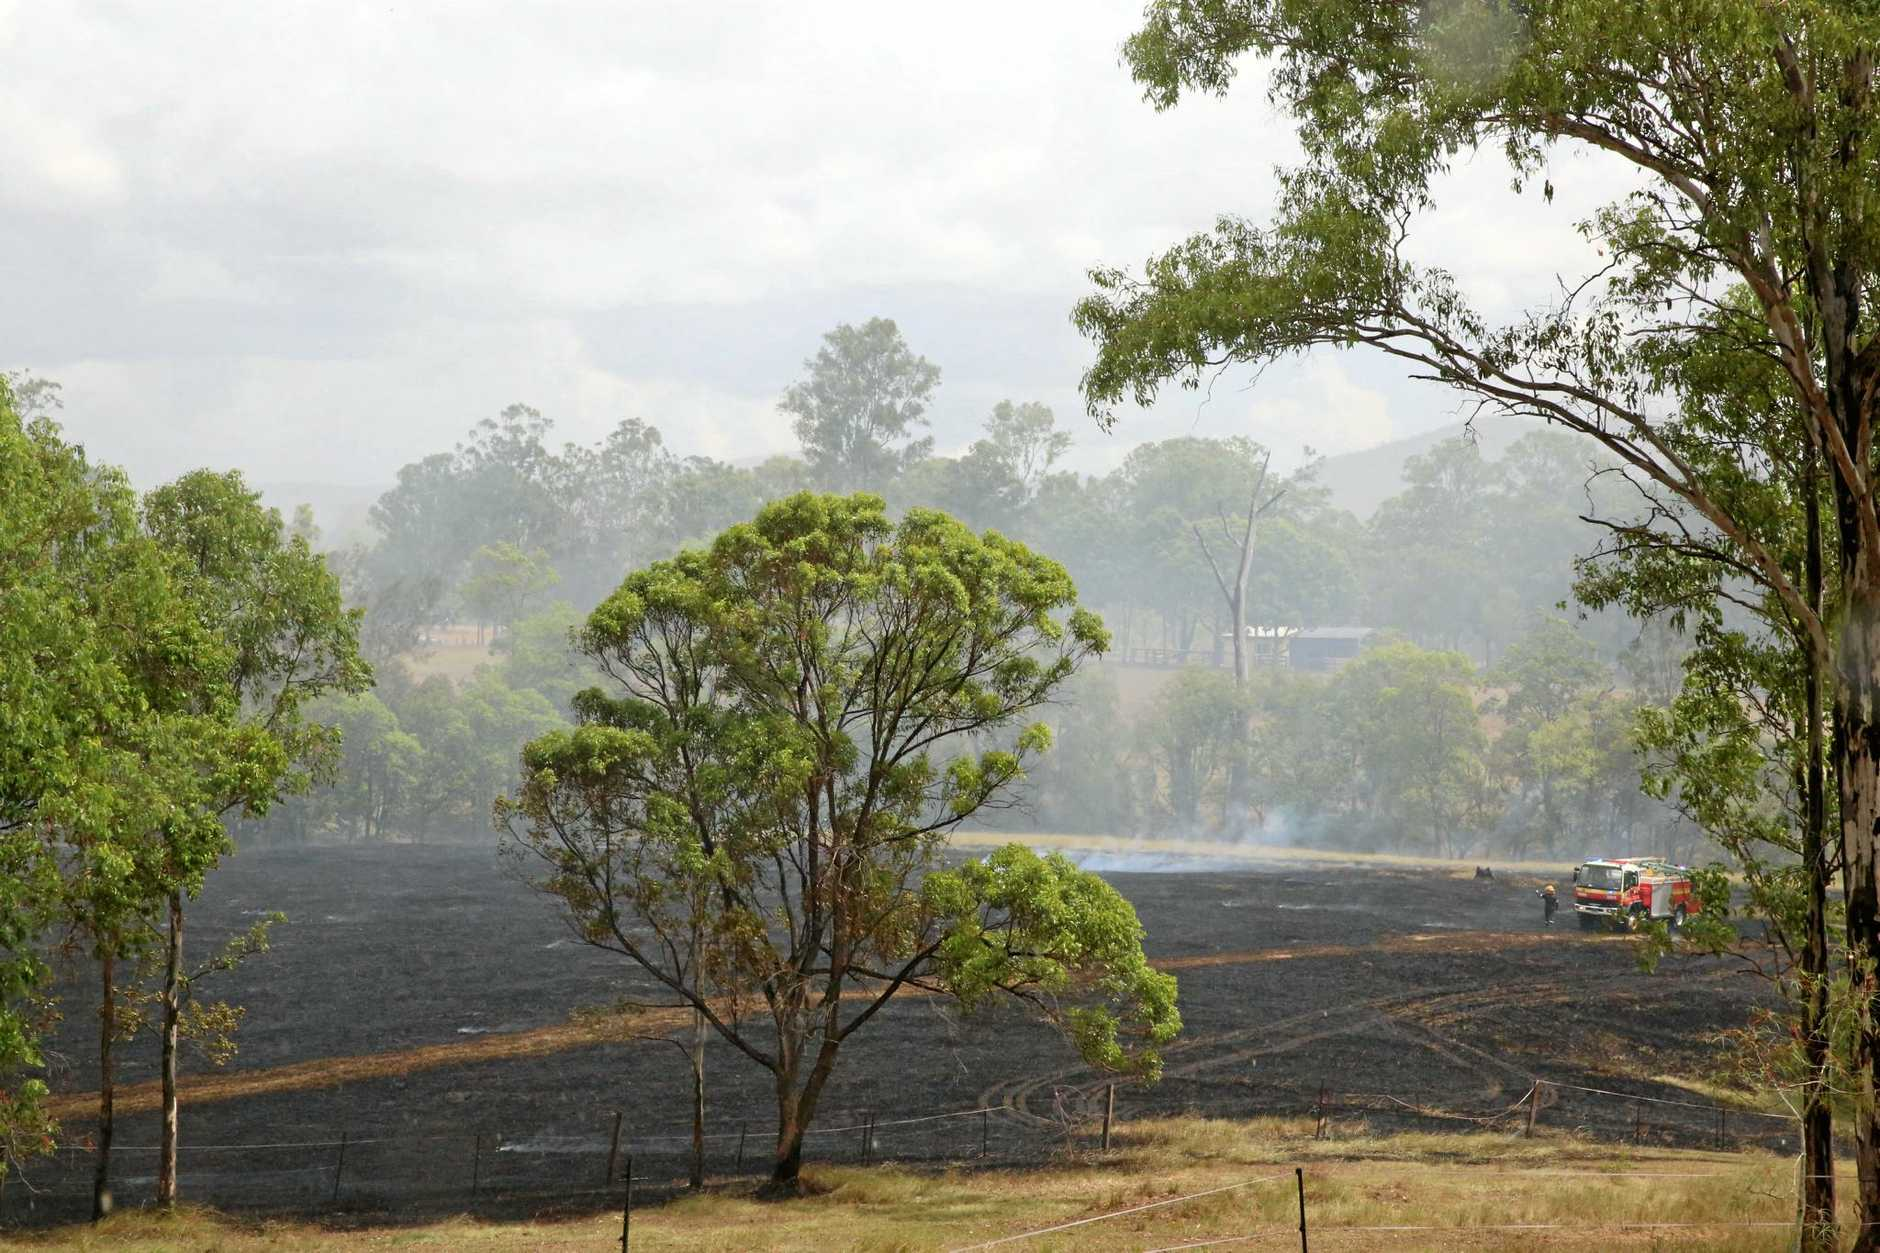 BLACKENED EARTH: Emergency crews extinguished a grass fire at Danchia Court, Southside.